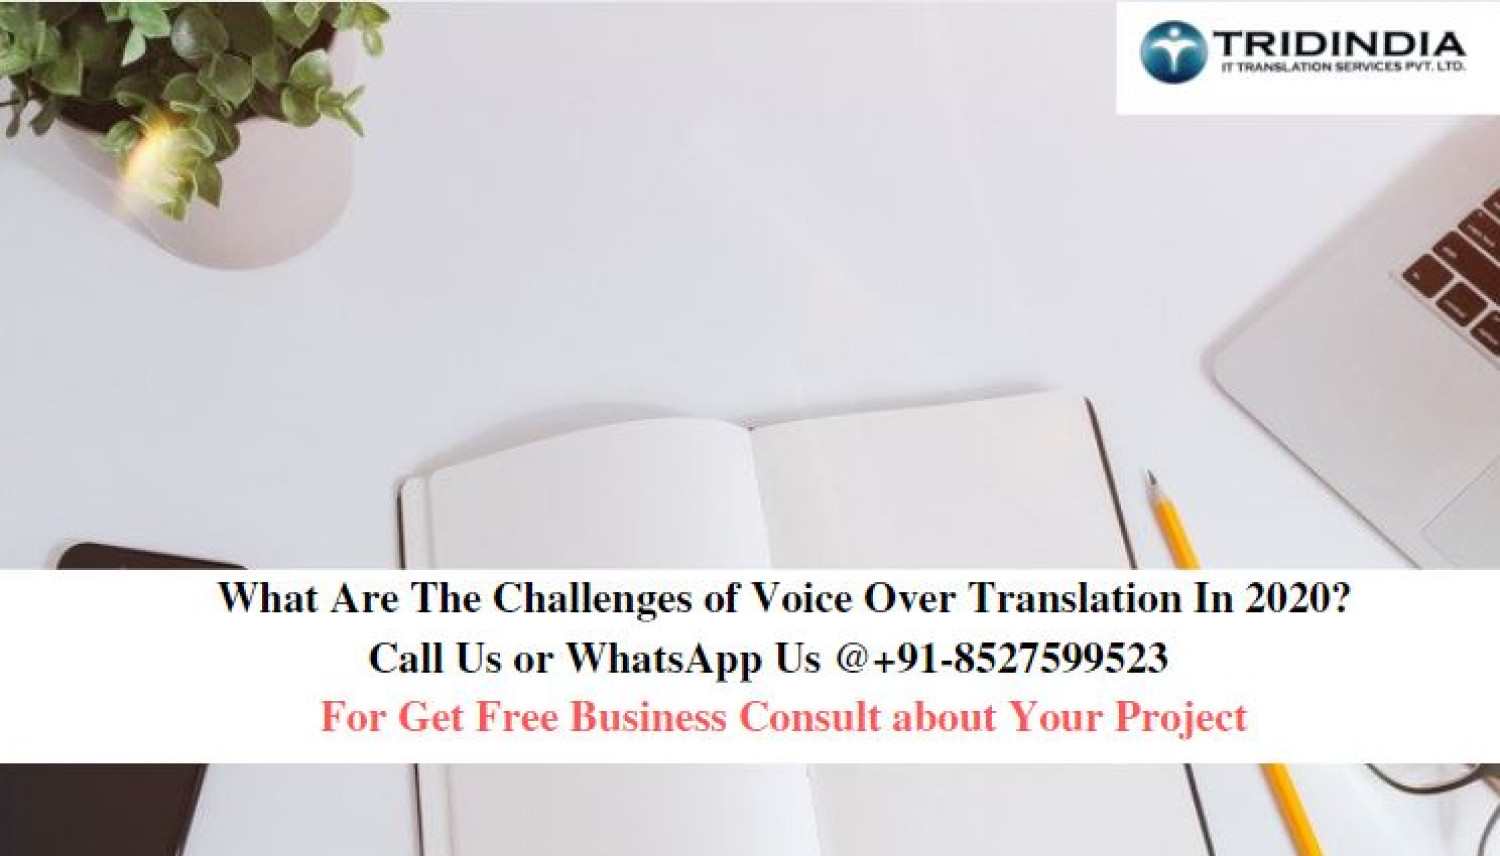 What Are The Challenges of Voice Over Translation In 2020?  Infographic